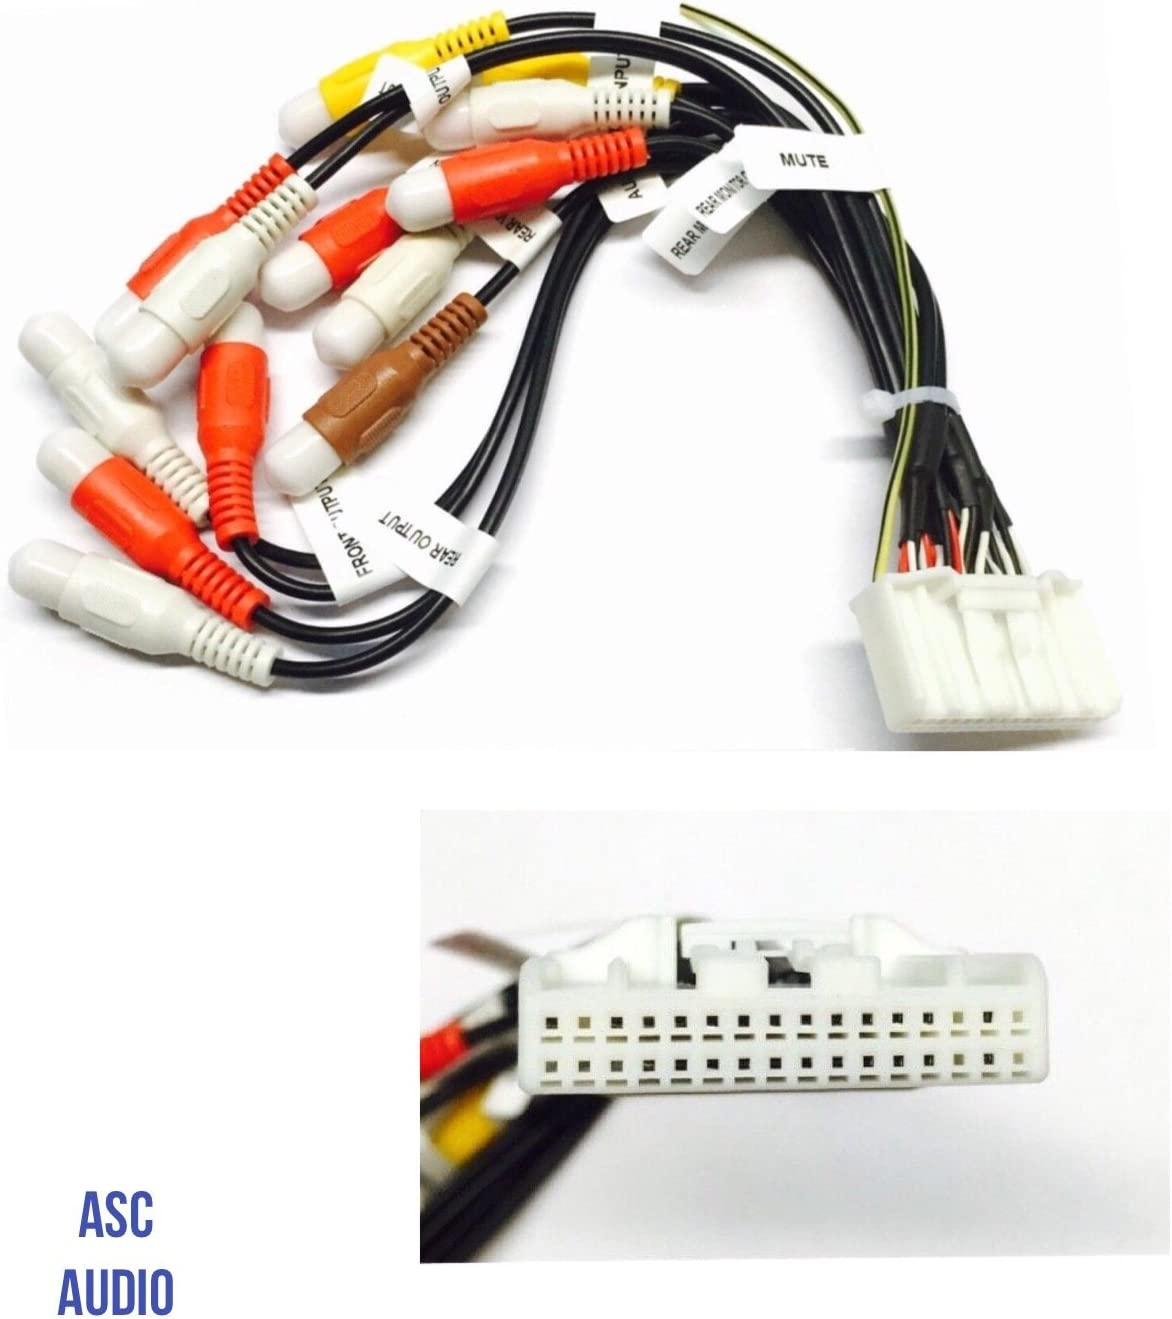 [DIAGRAM_5UK]  Amazon.com: ASC Car Stereo RCA Audio Video Wire Harness Plug for select  Pioneer / Premier 32 Pin Aftermarket DVD Nav Radio- CDP1335, CDP1304  CDP1540, AVIC-X920BT,X920 AVIC-Z120BT X850BT X8510BT X950BH Z150BH | Pioneer Car Stereo Wiring Harness Rca |  | Amazon.com